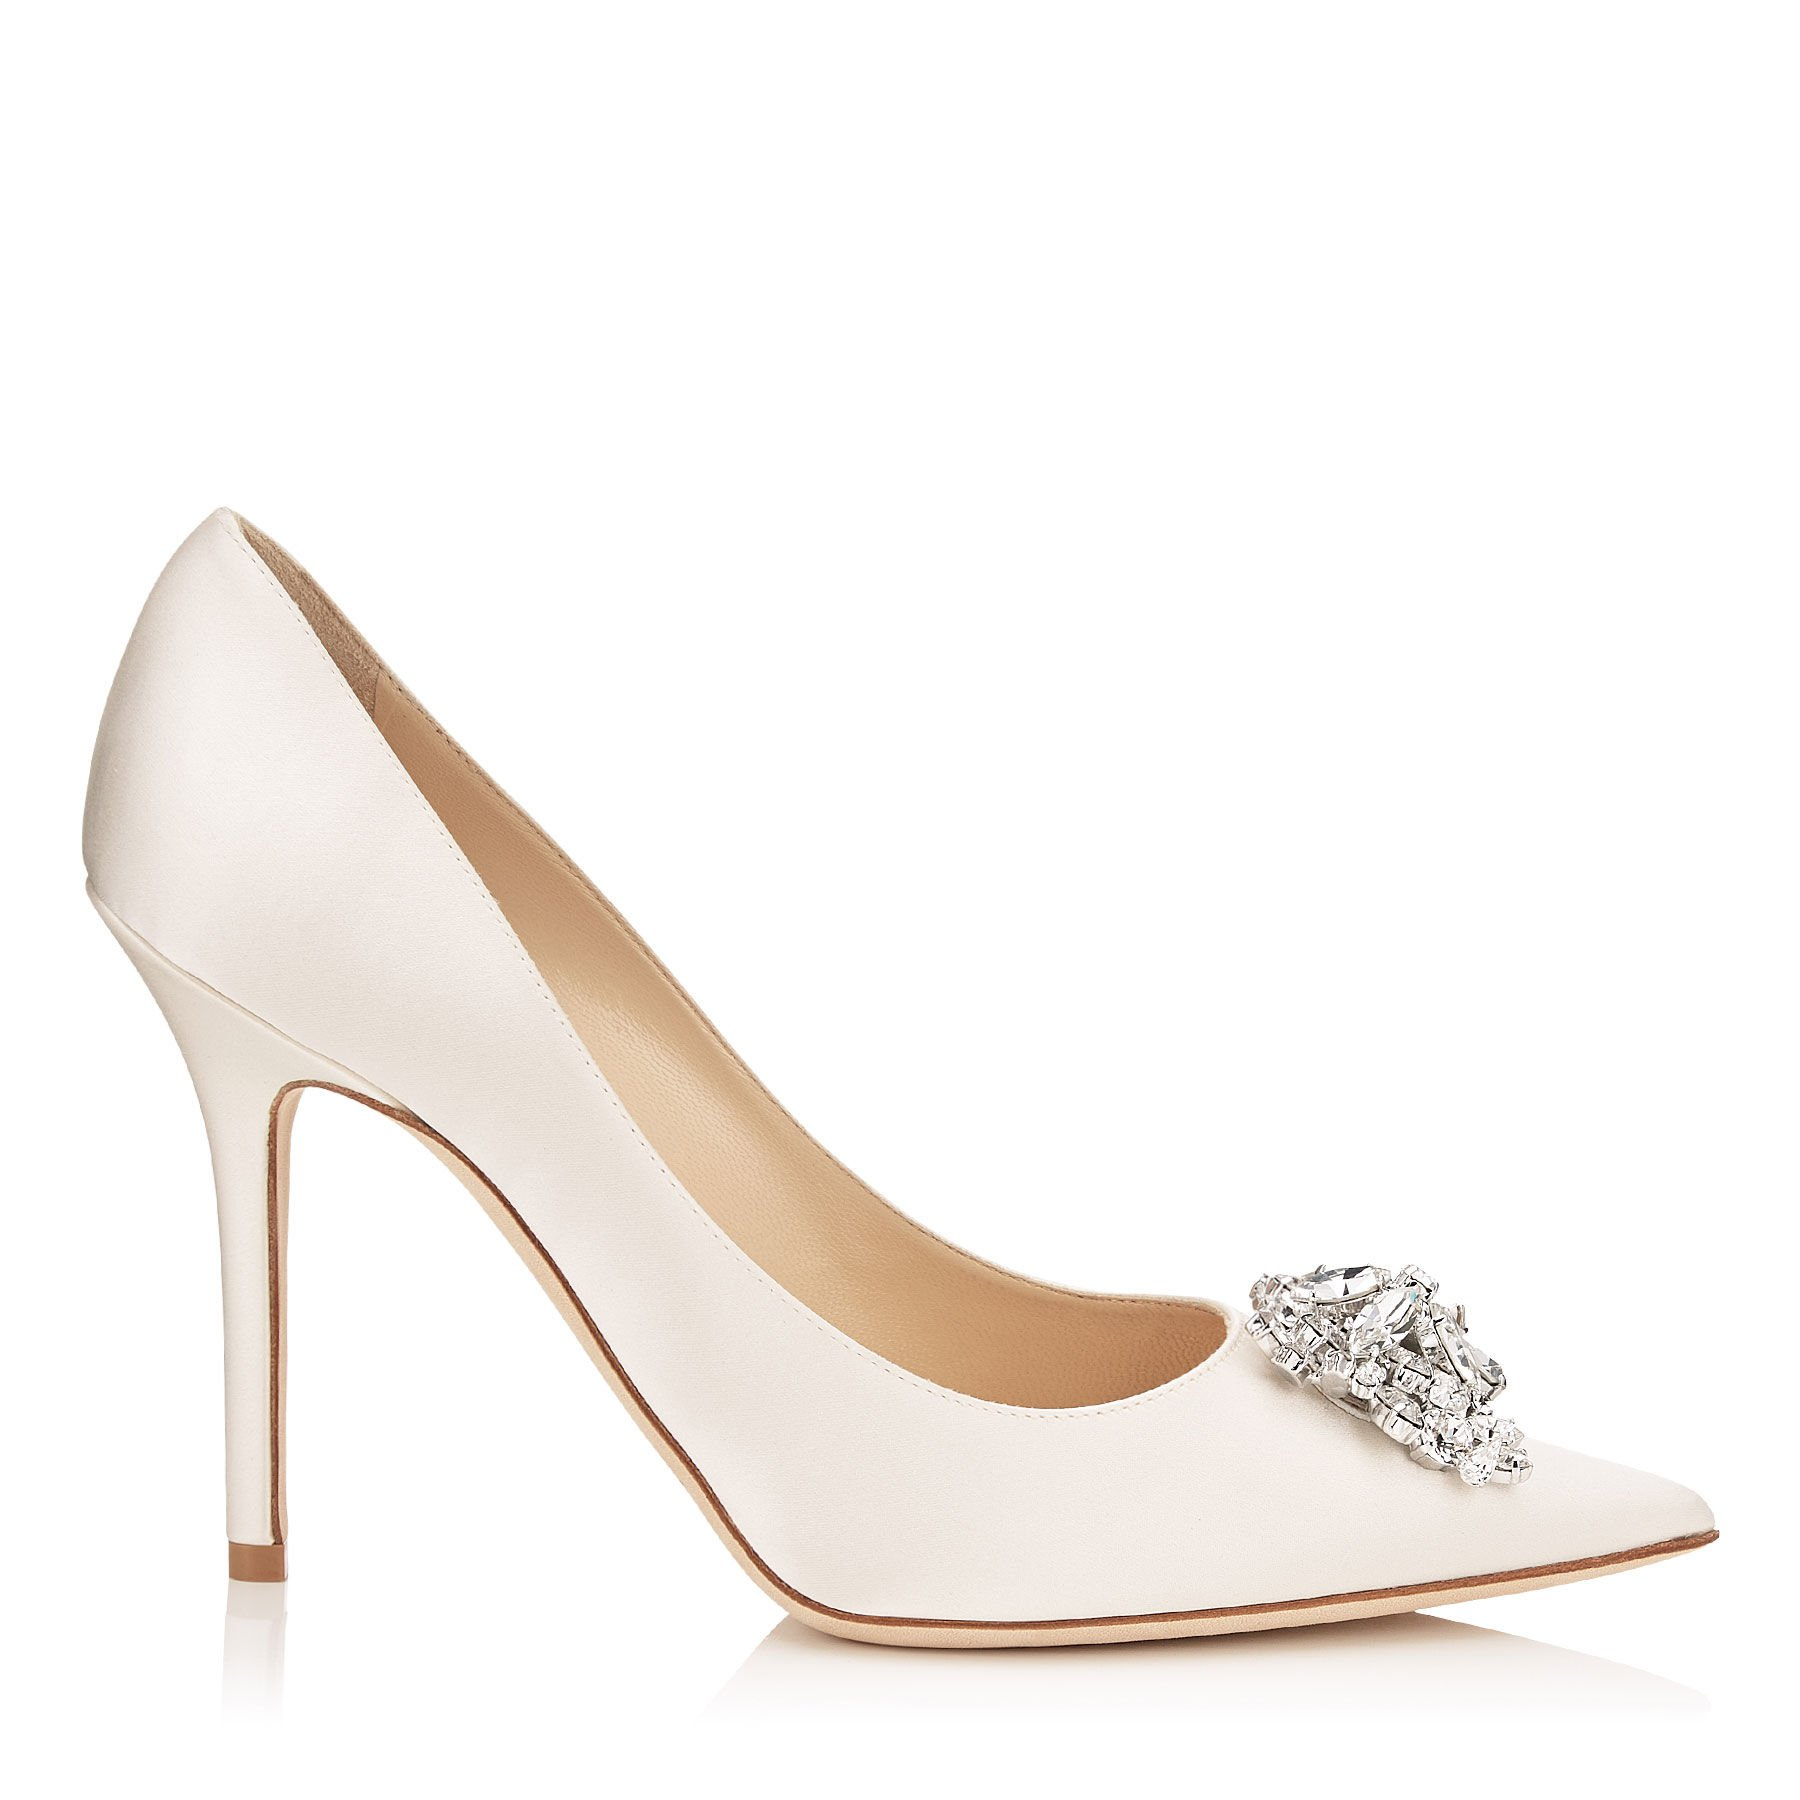 White pointed toe pumps with diamond